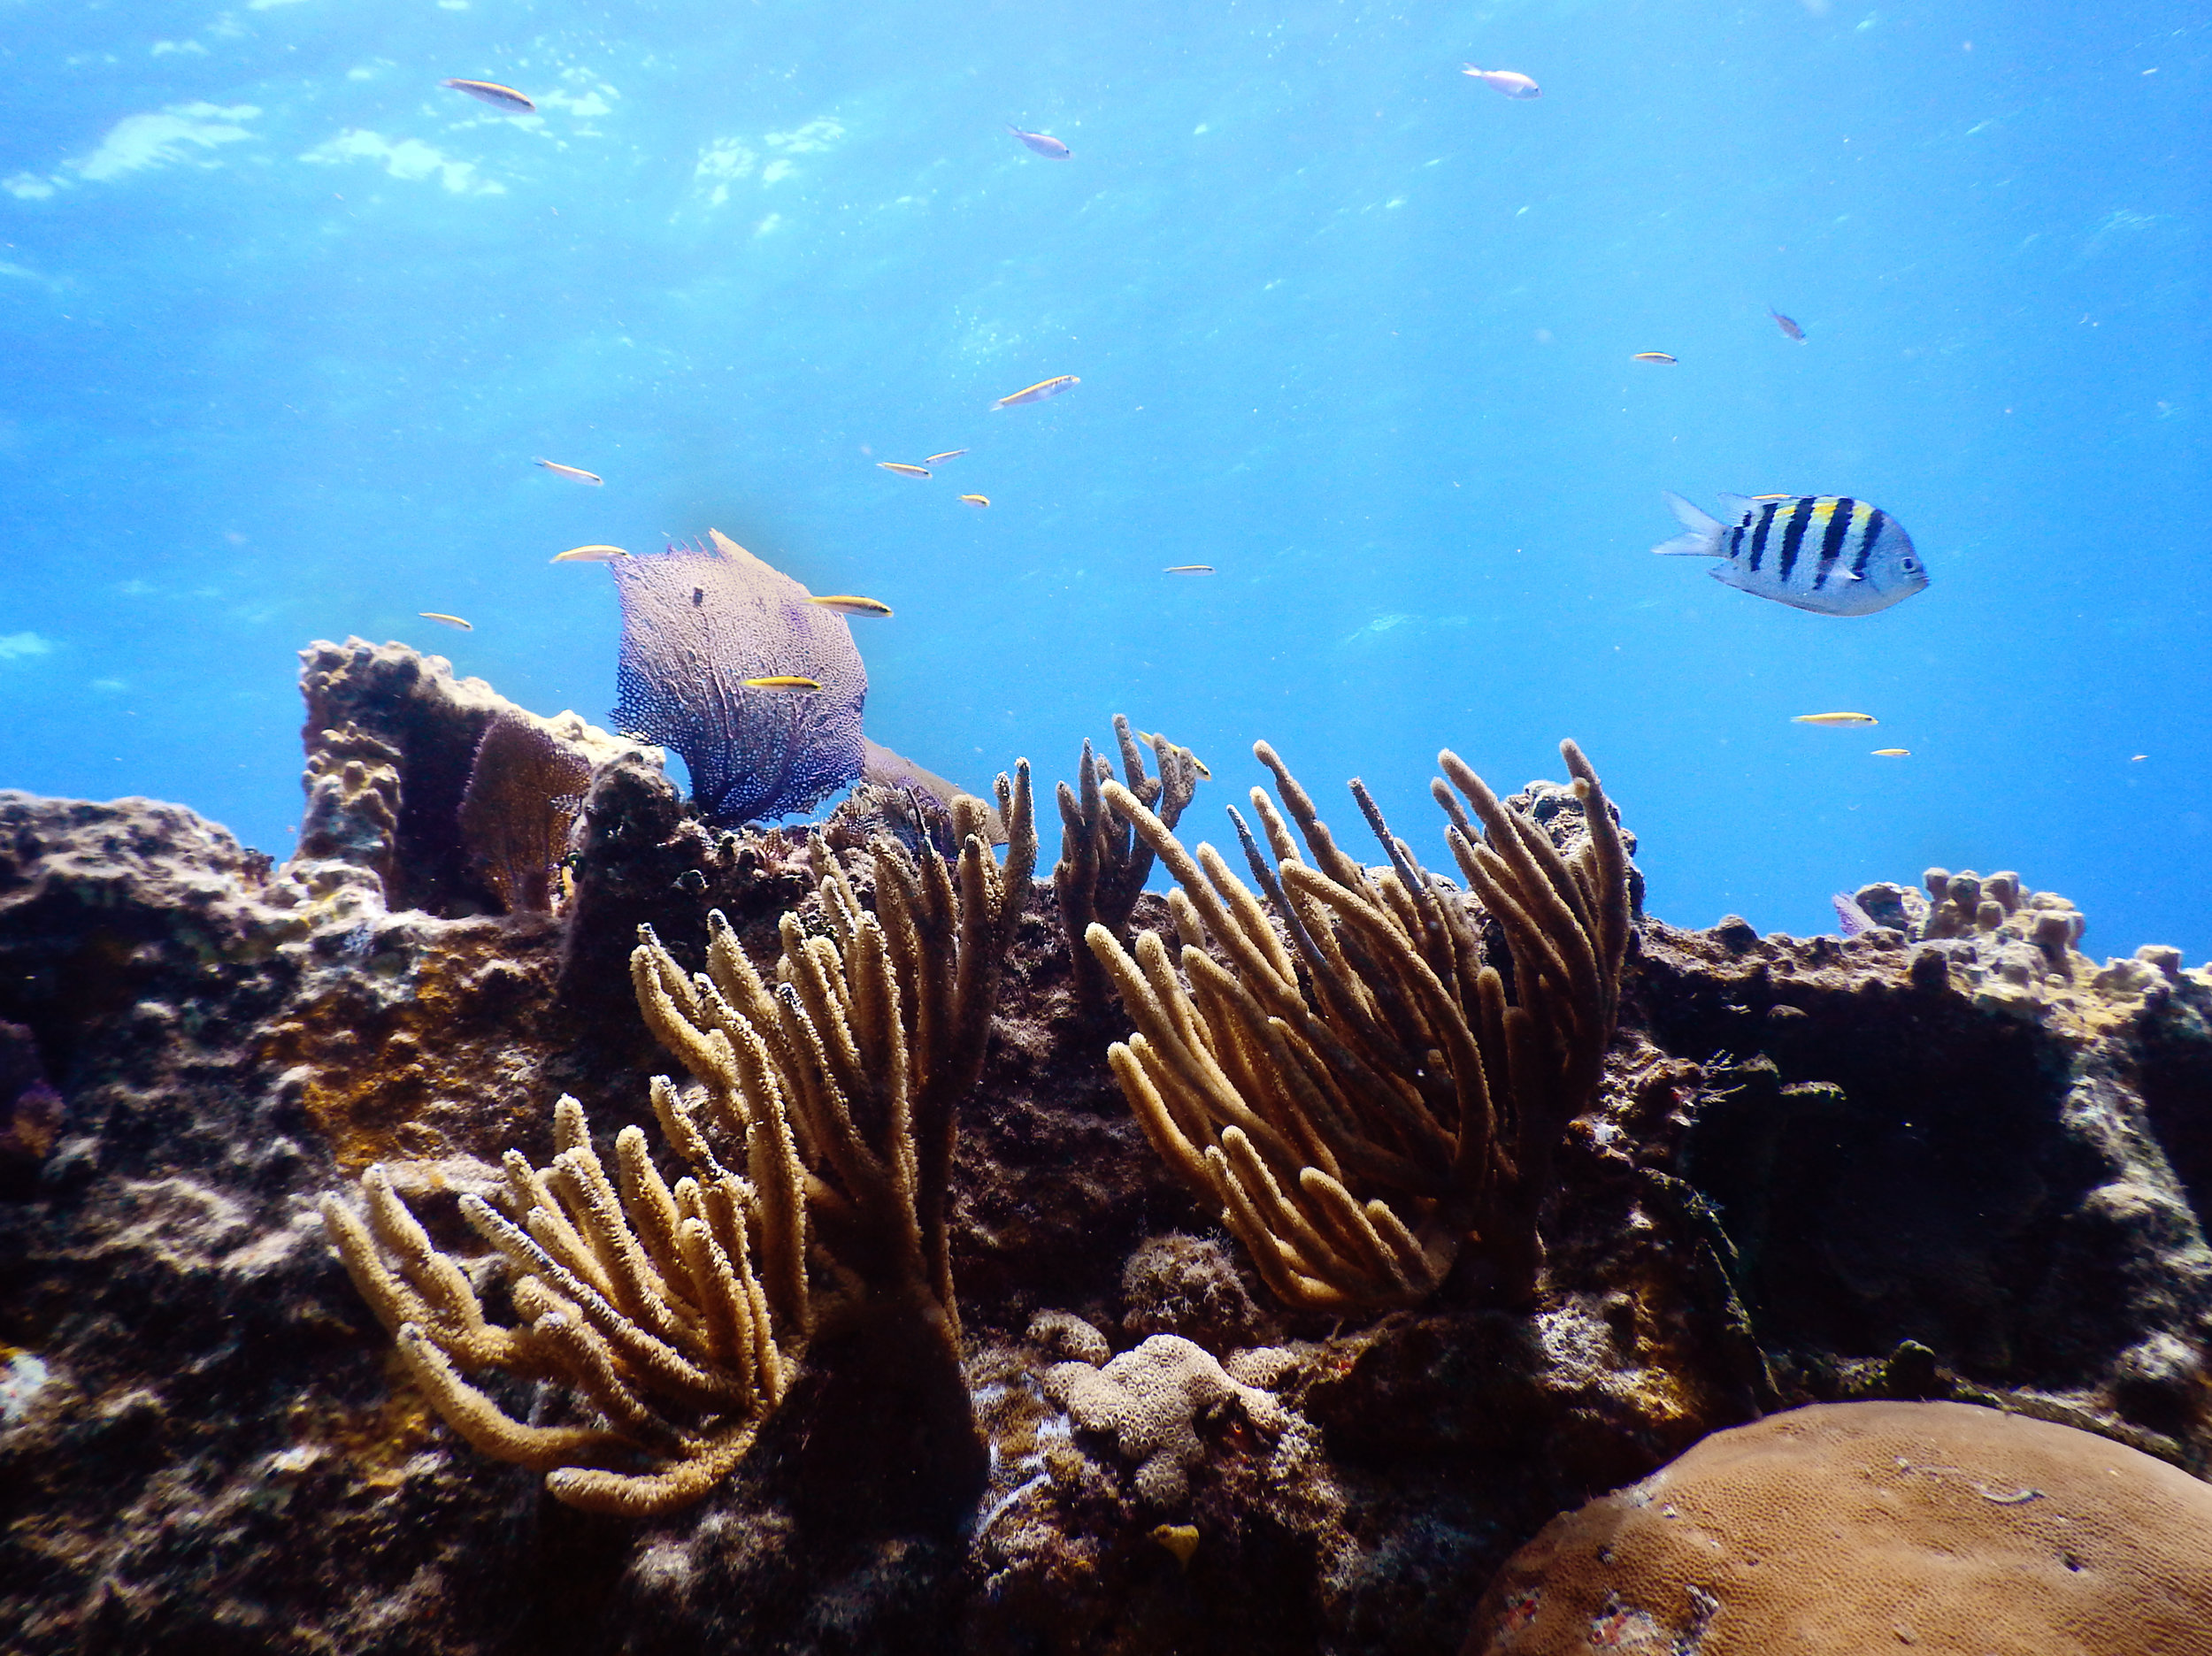 A reefscape off the coast of Nassau.